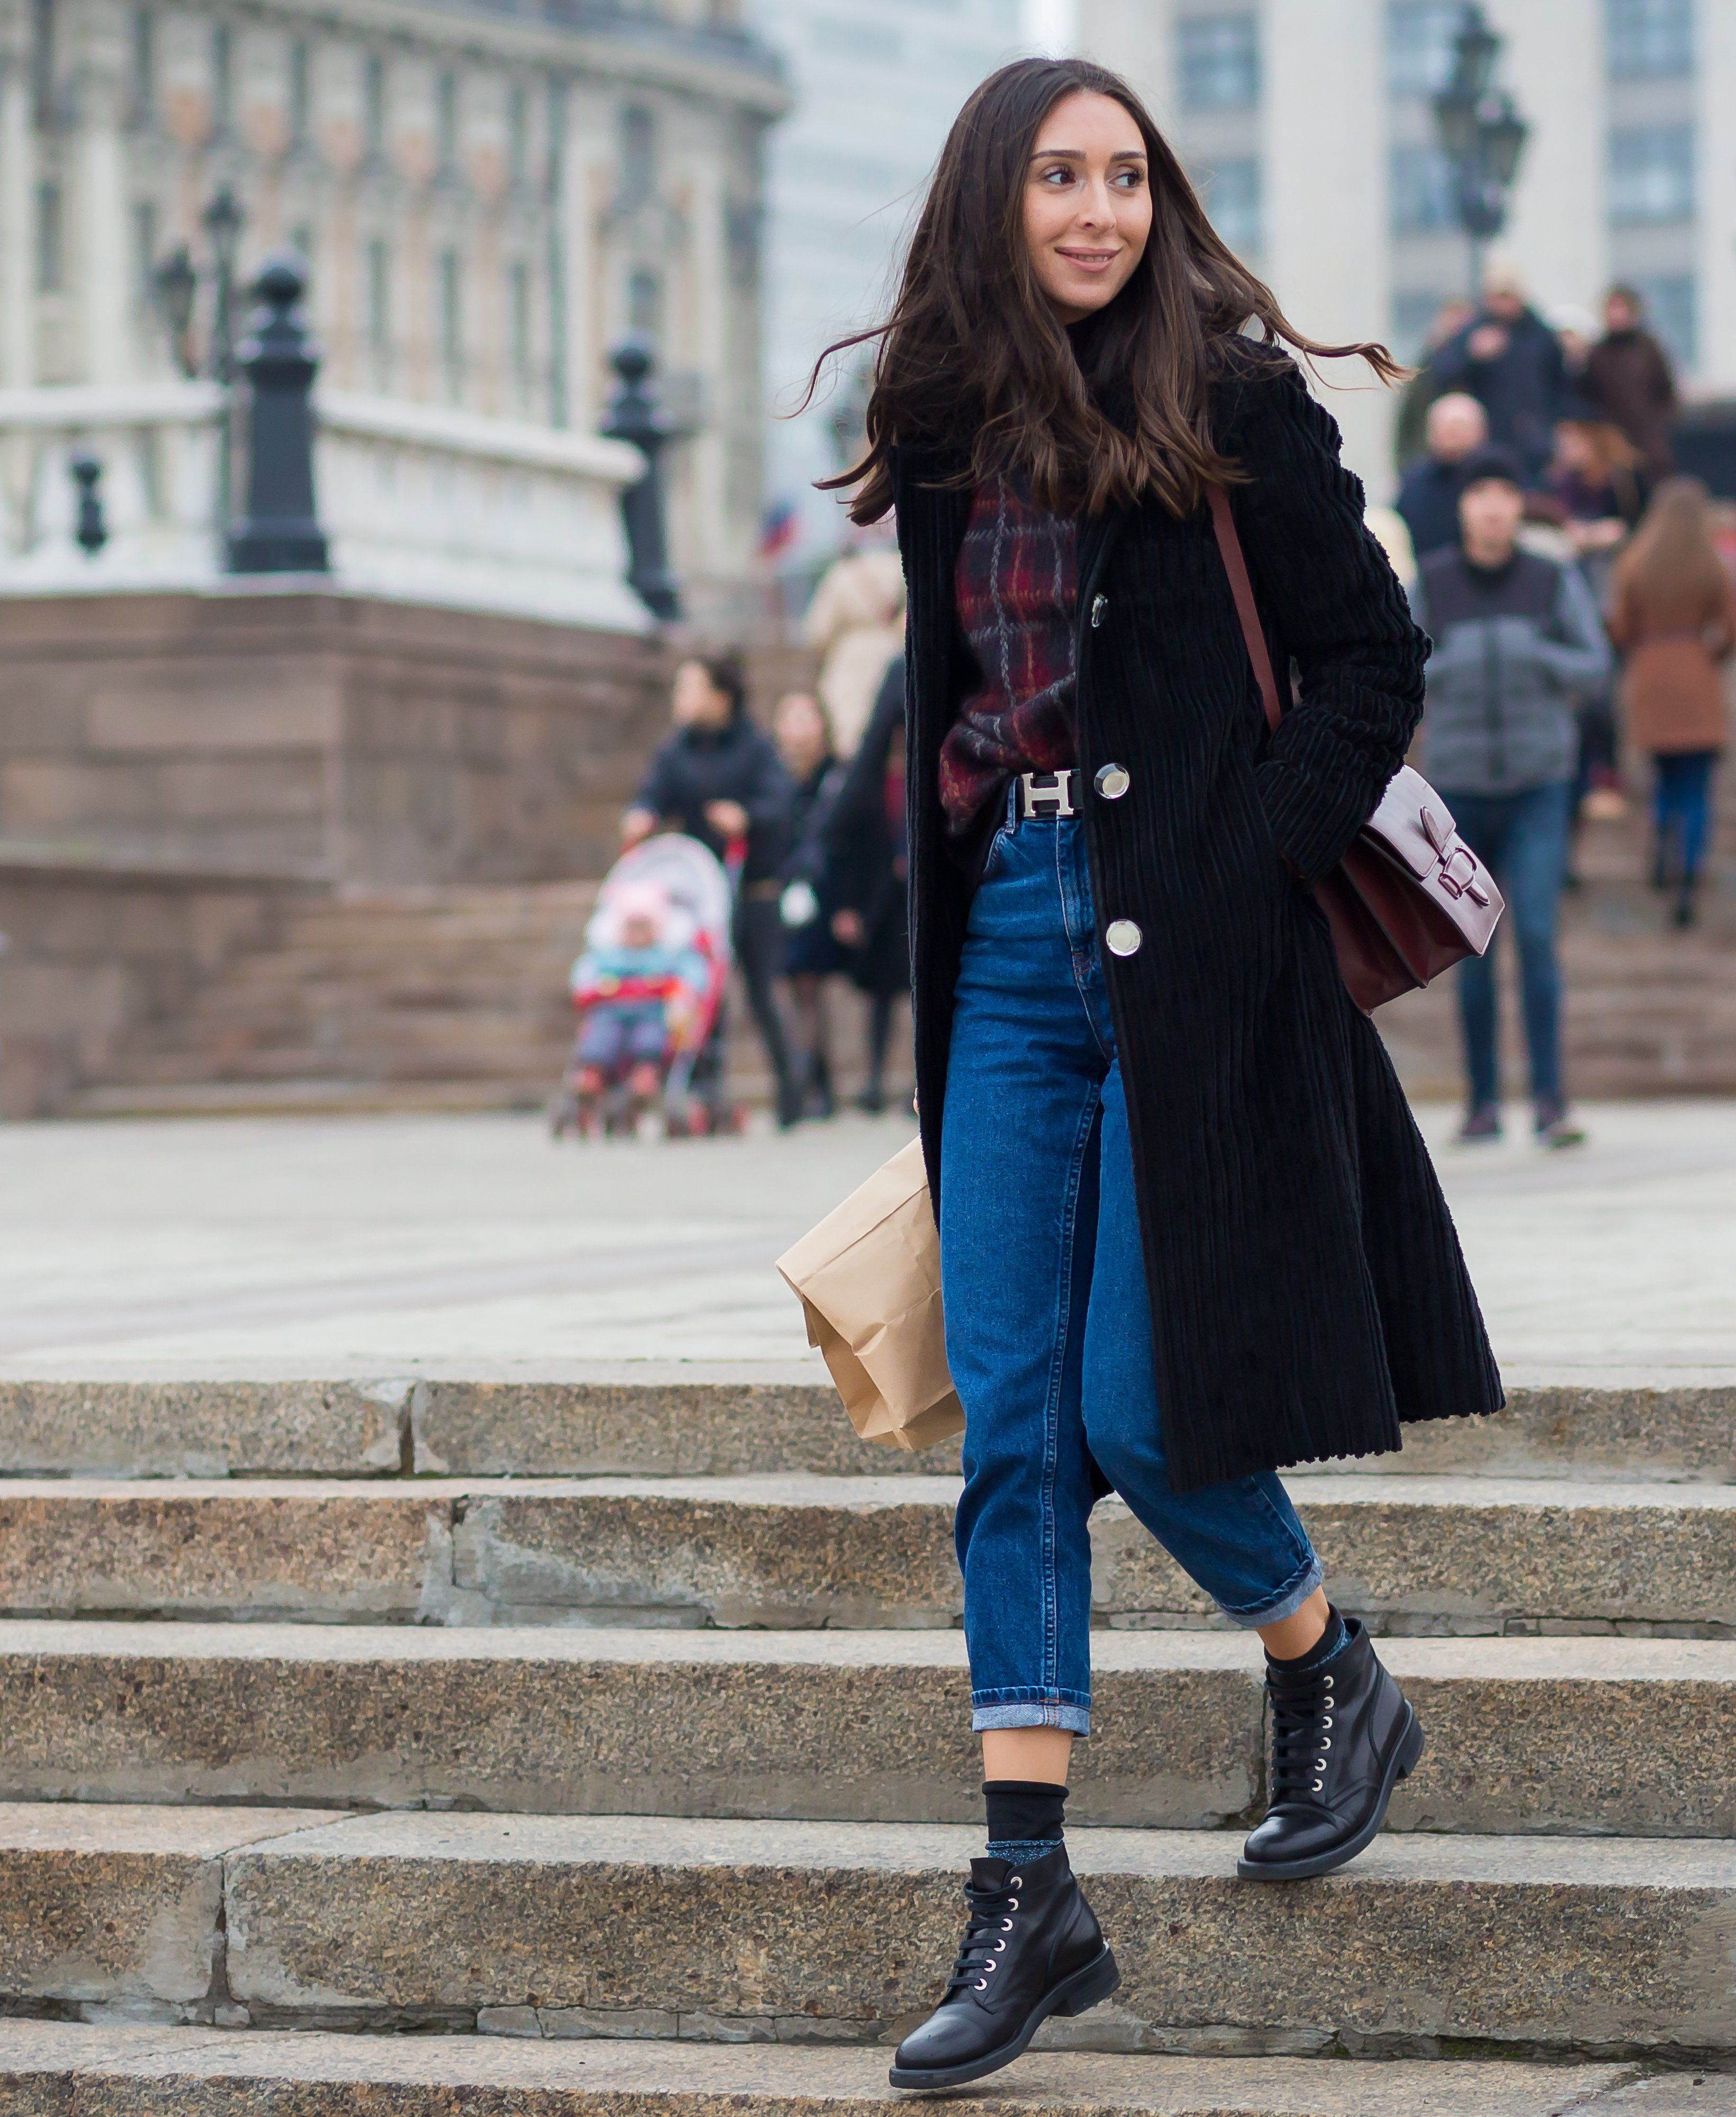 The Best Street Style Pics From Fashion Week Russia in ...